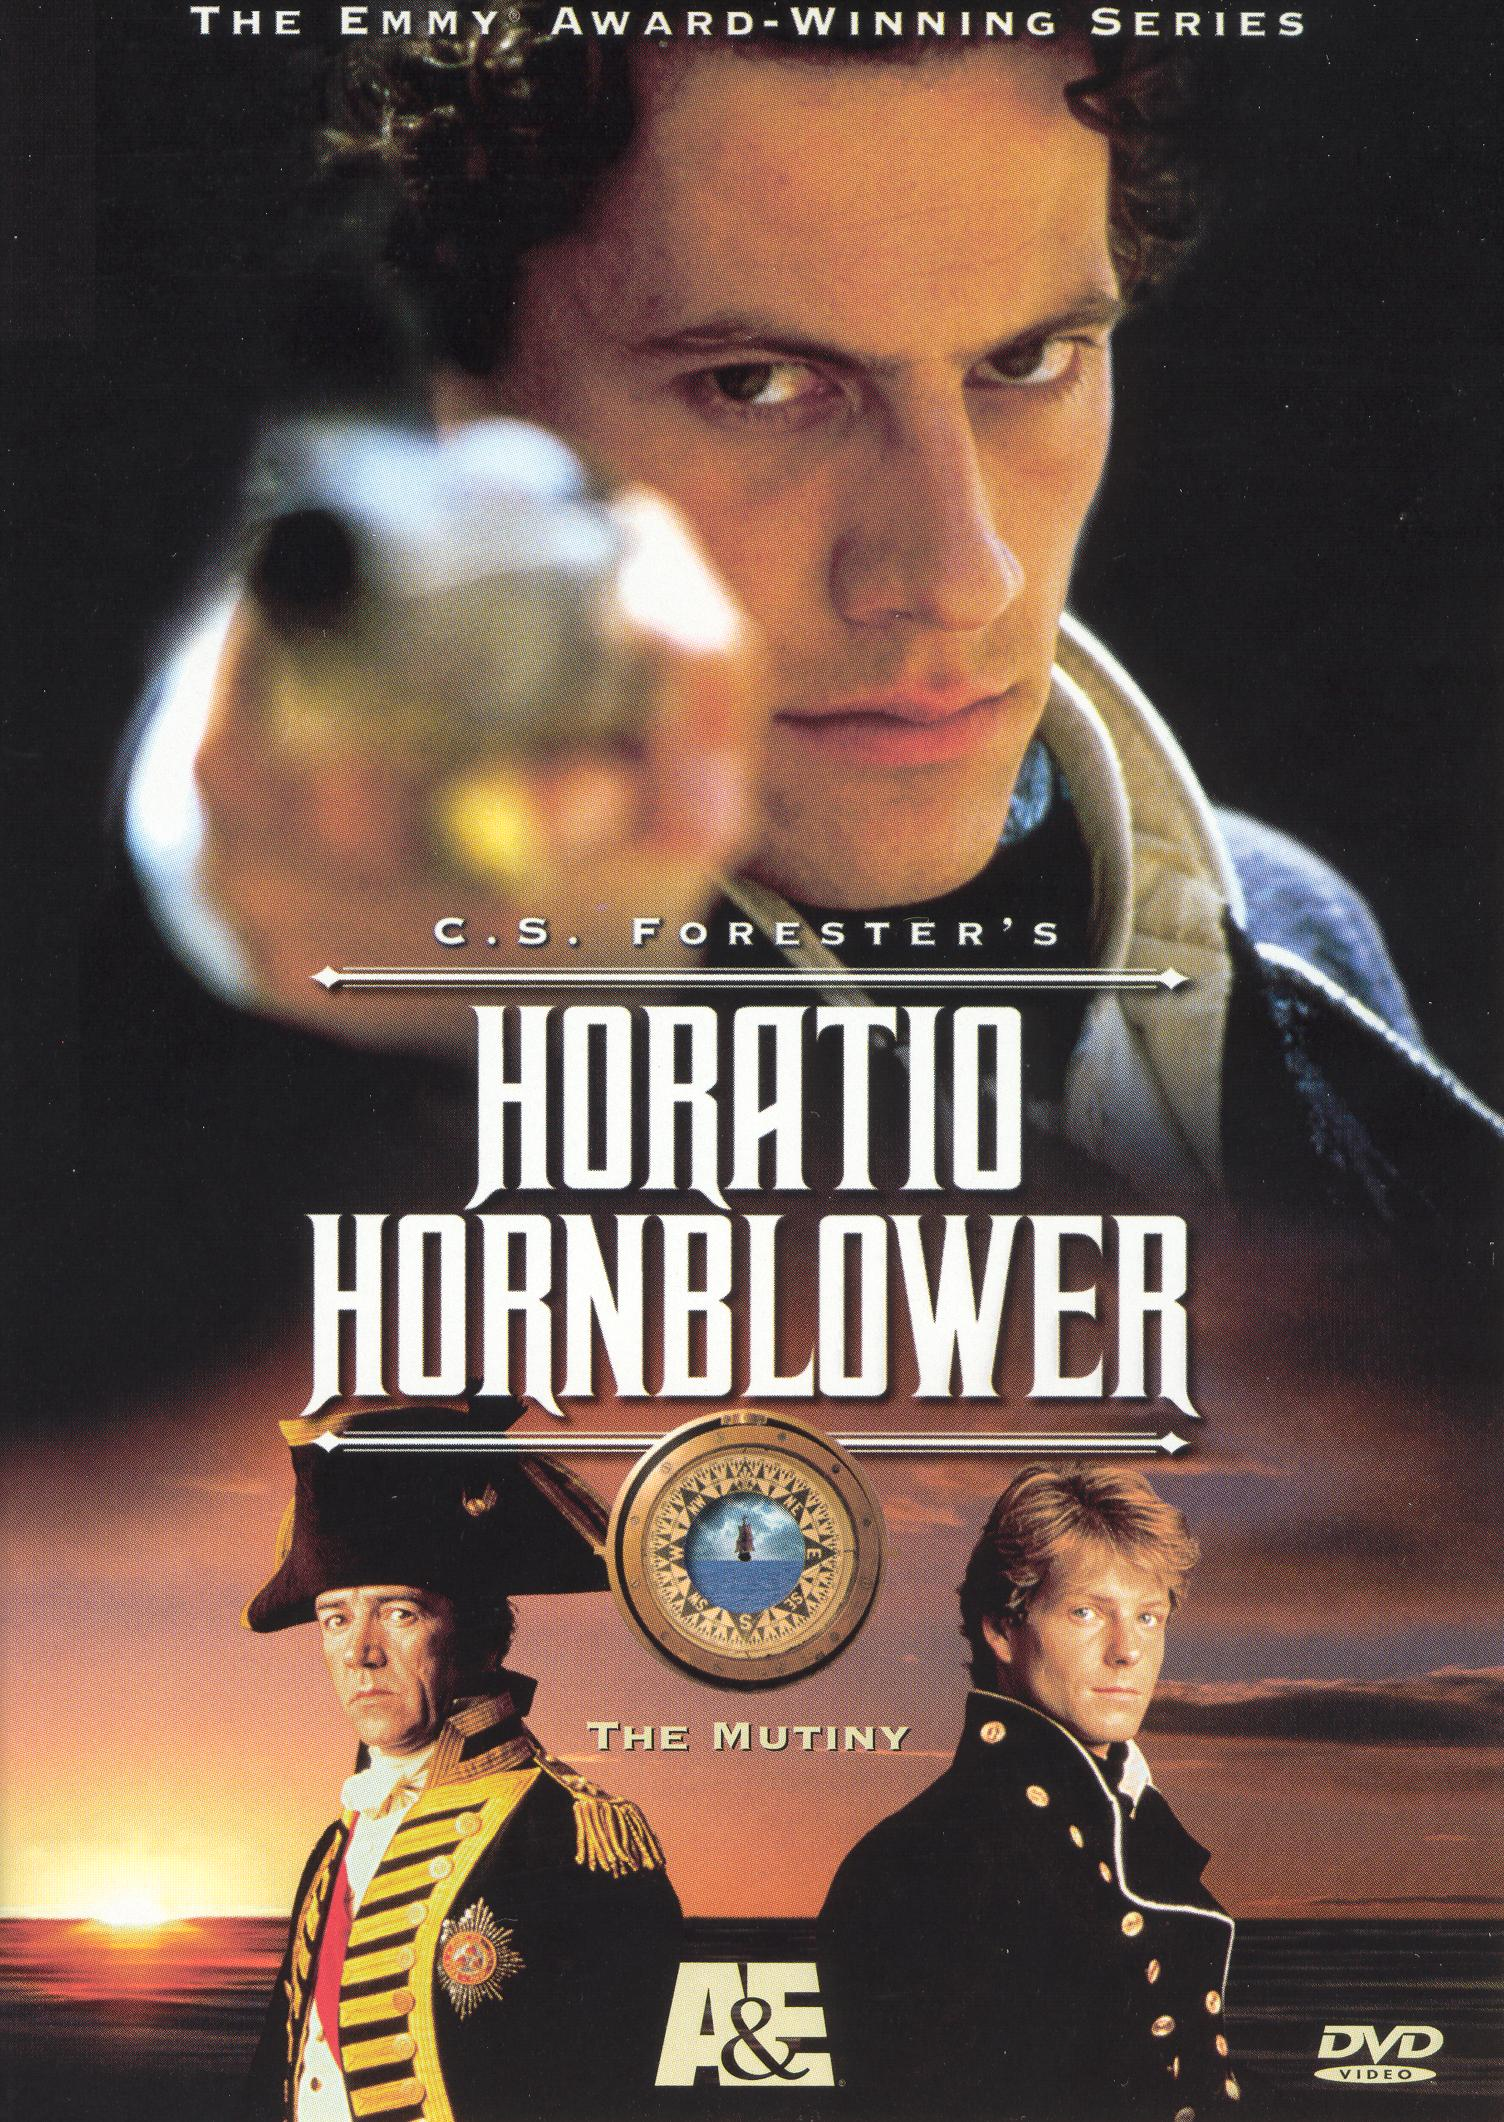 Horatio Hornblower: The Adventure Continues - The Mutiny